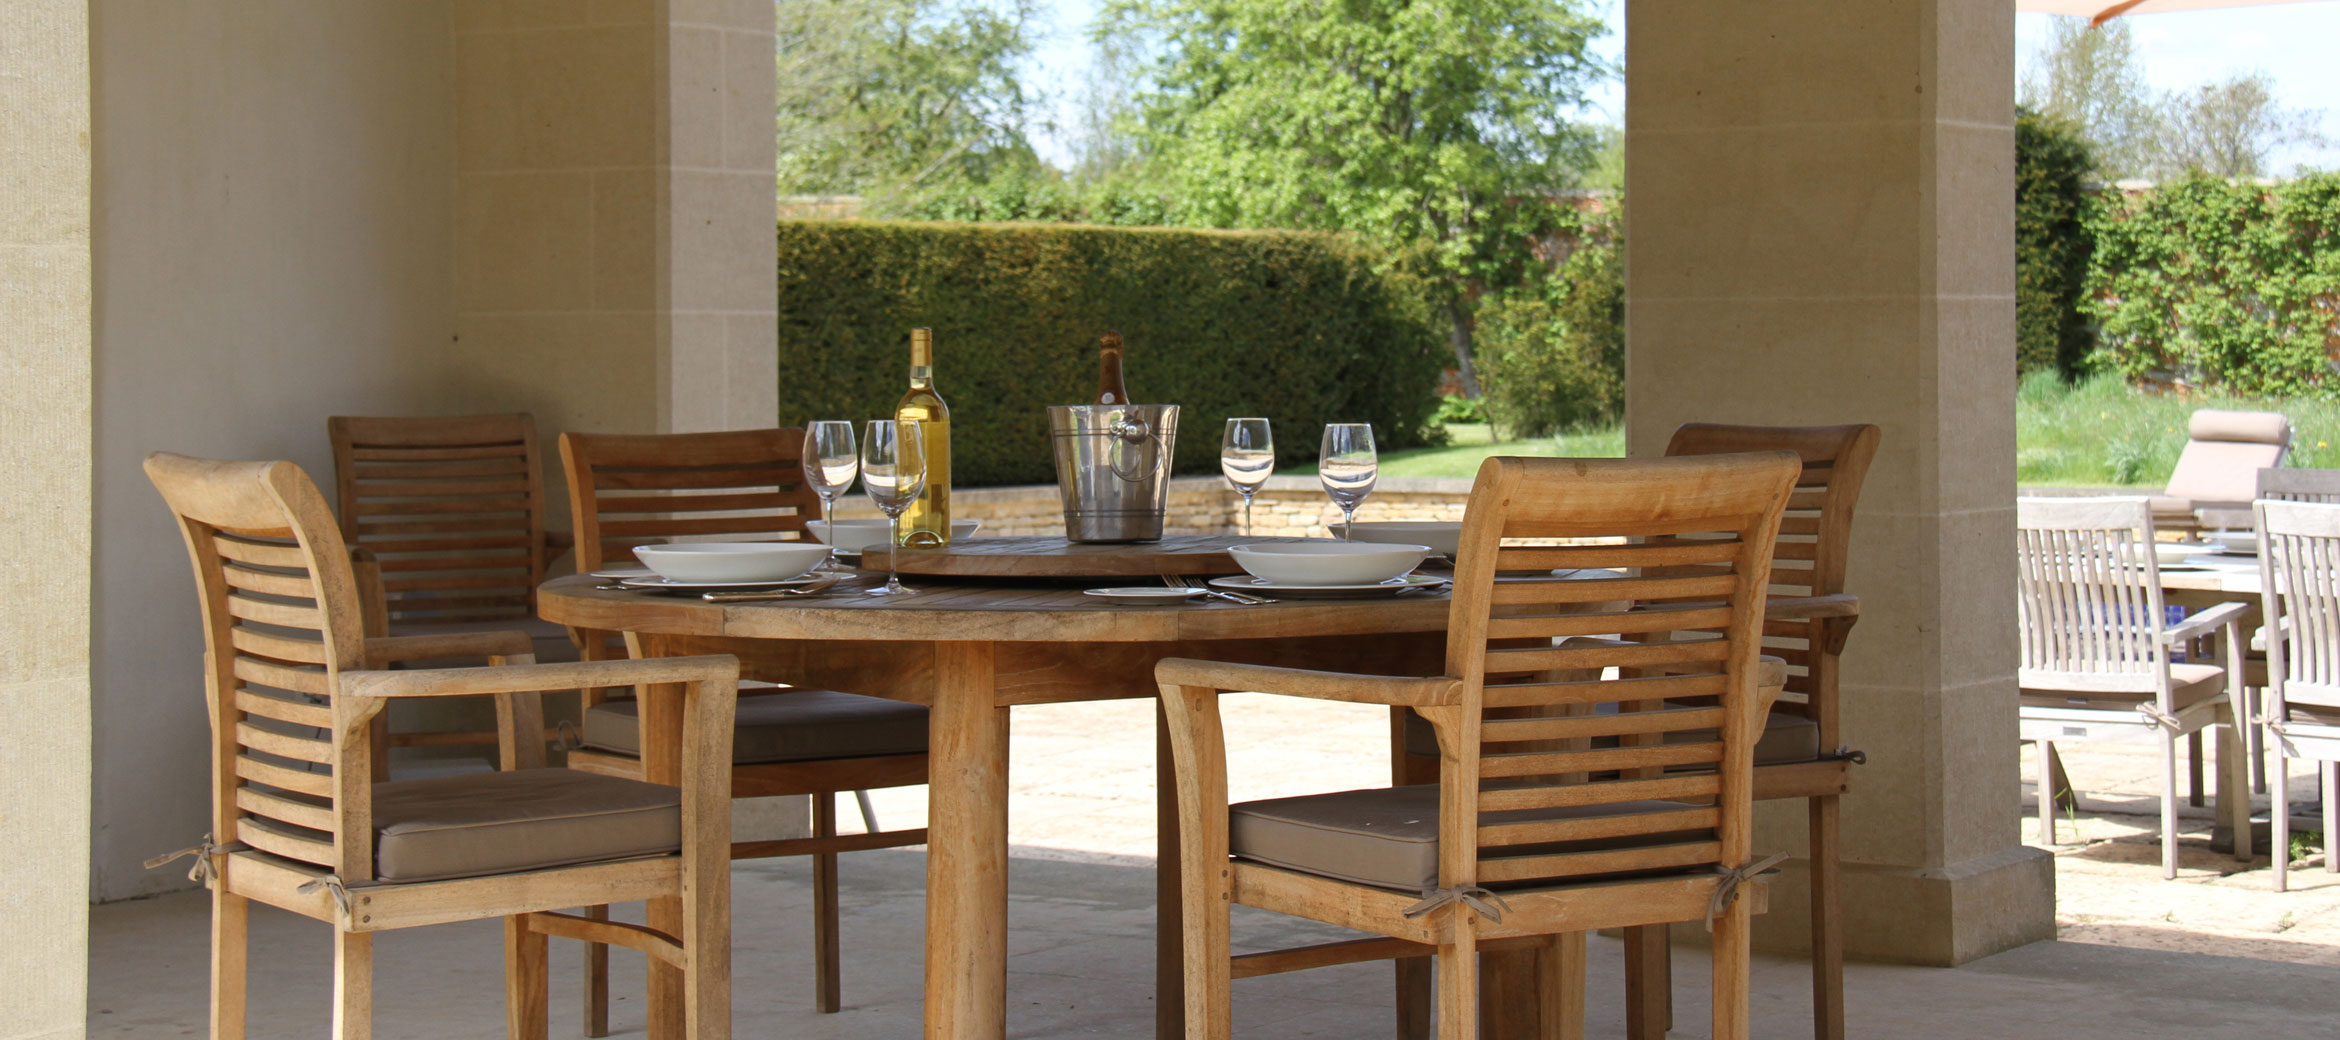 langley-park-cotswold-outdoor-poolside-dining